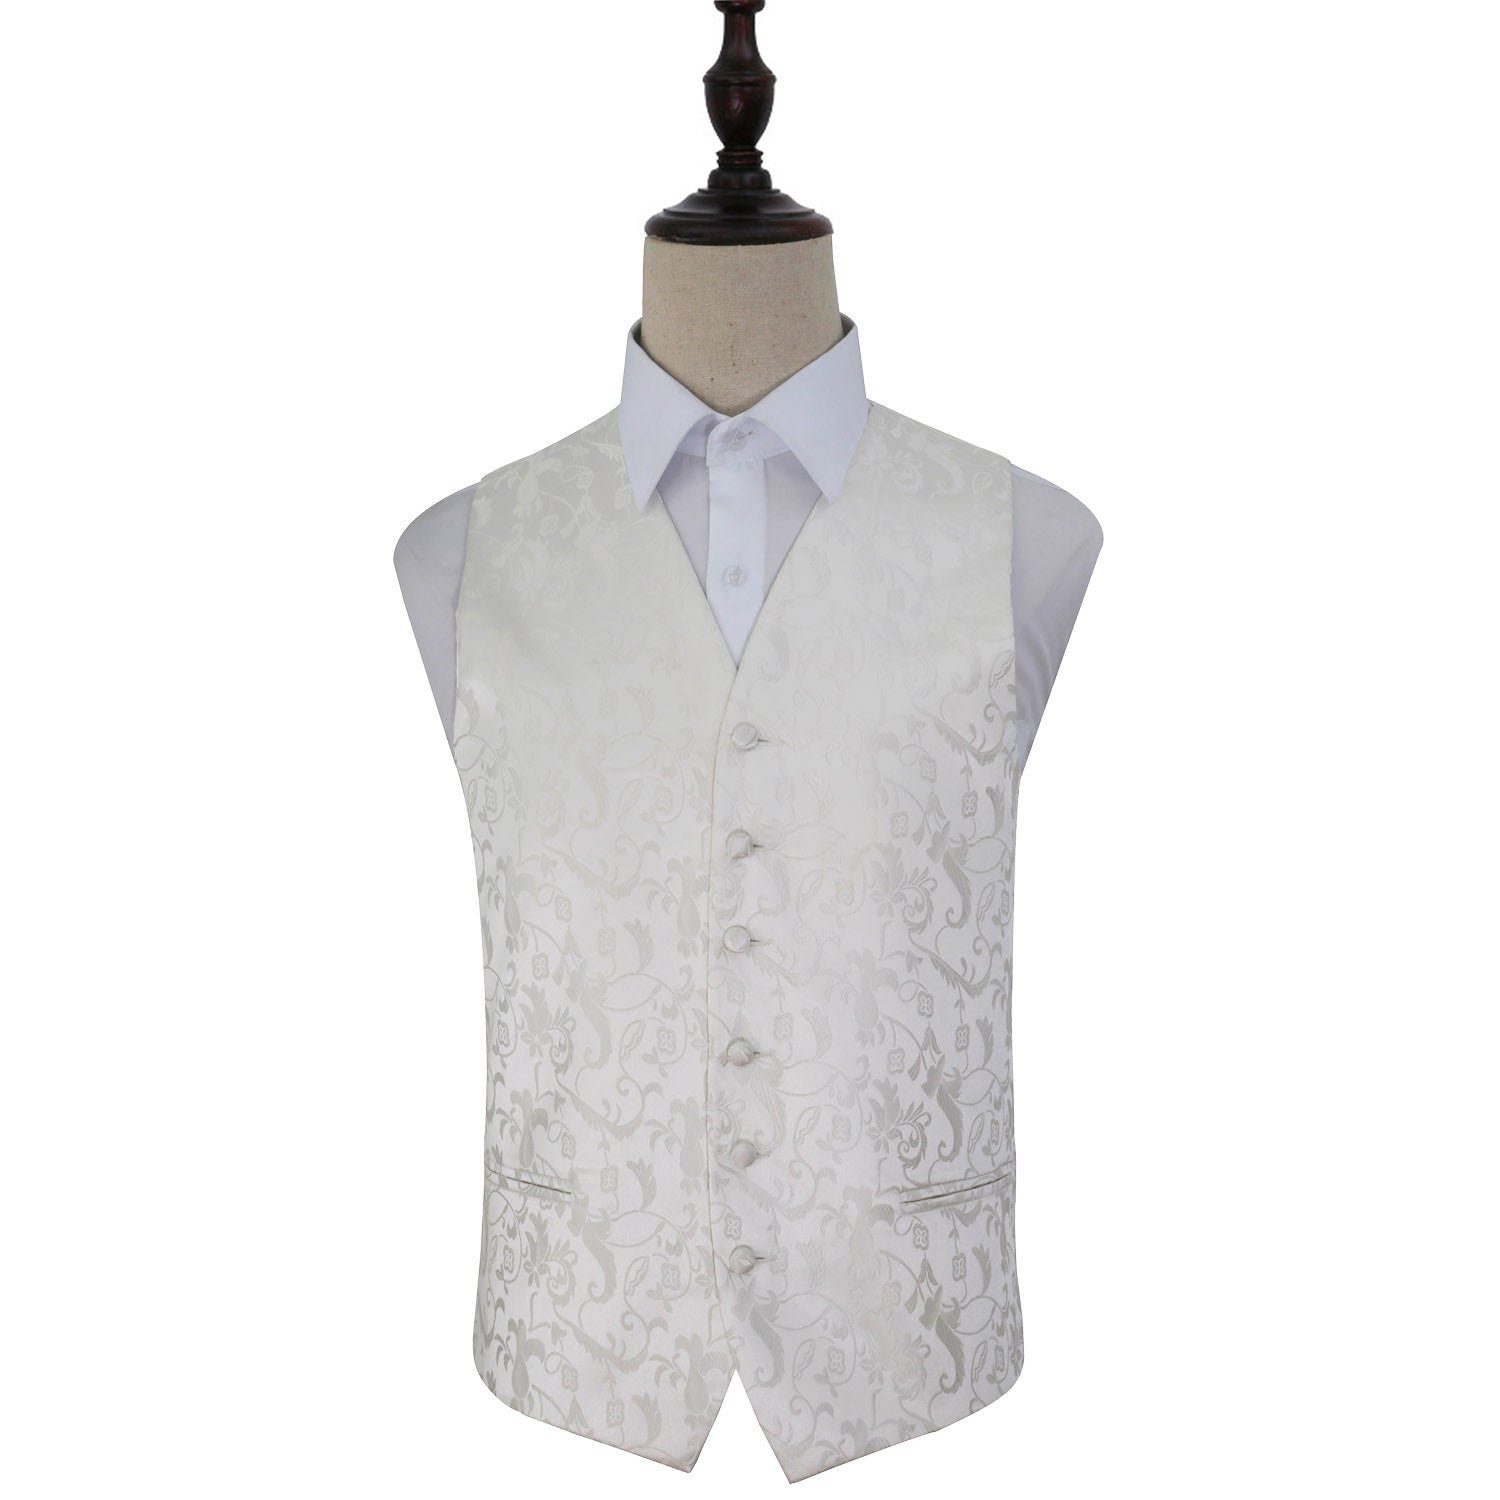 Passion Waistcoat - Ivory, 36', Clothing by Low Cost Gifts